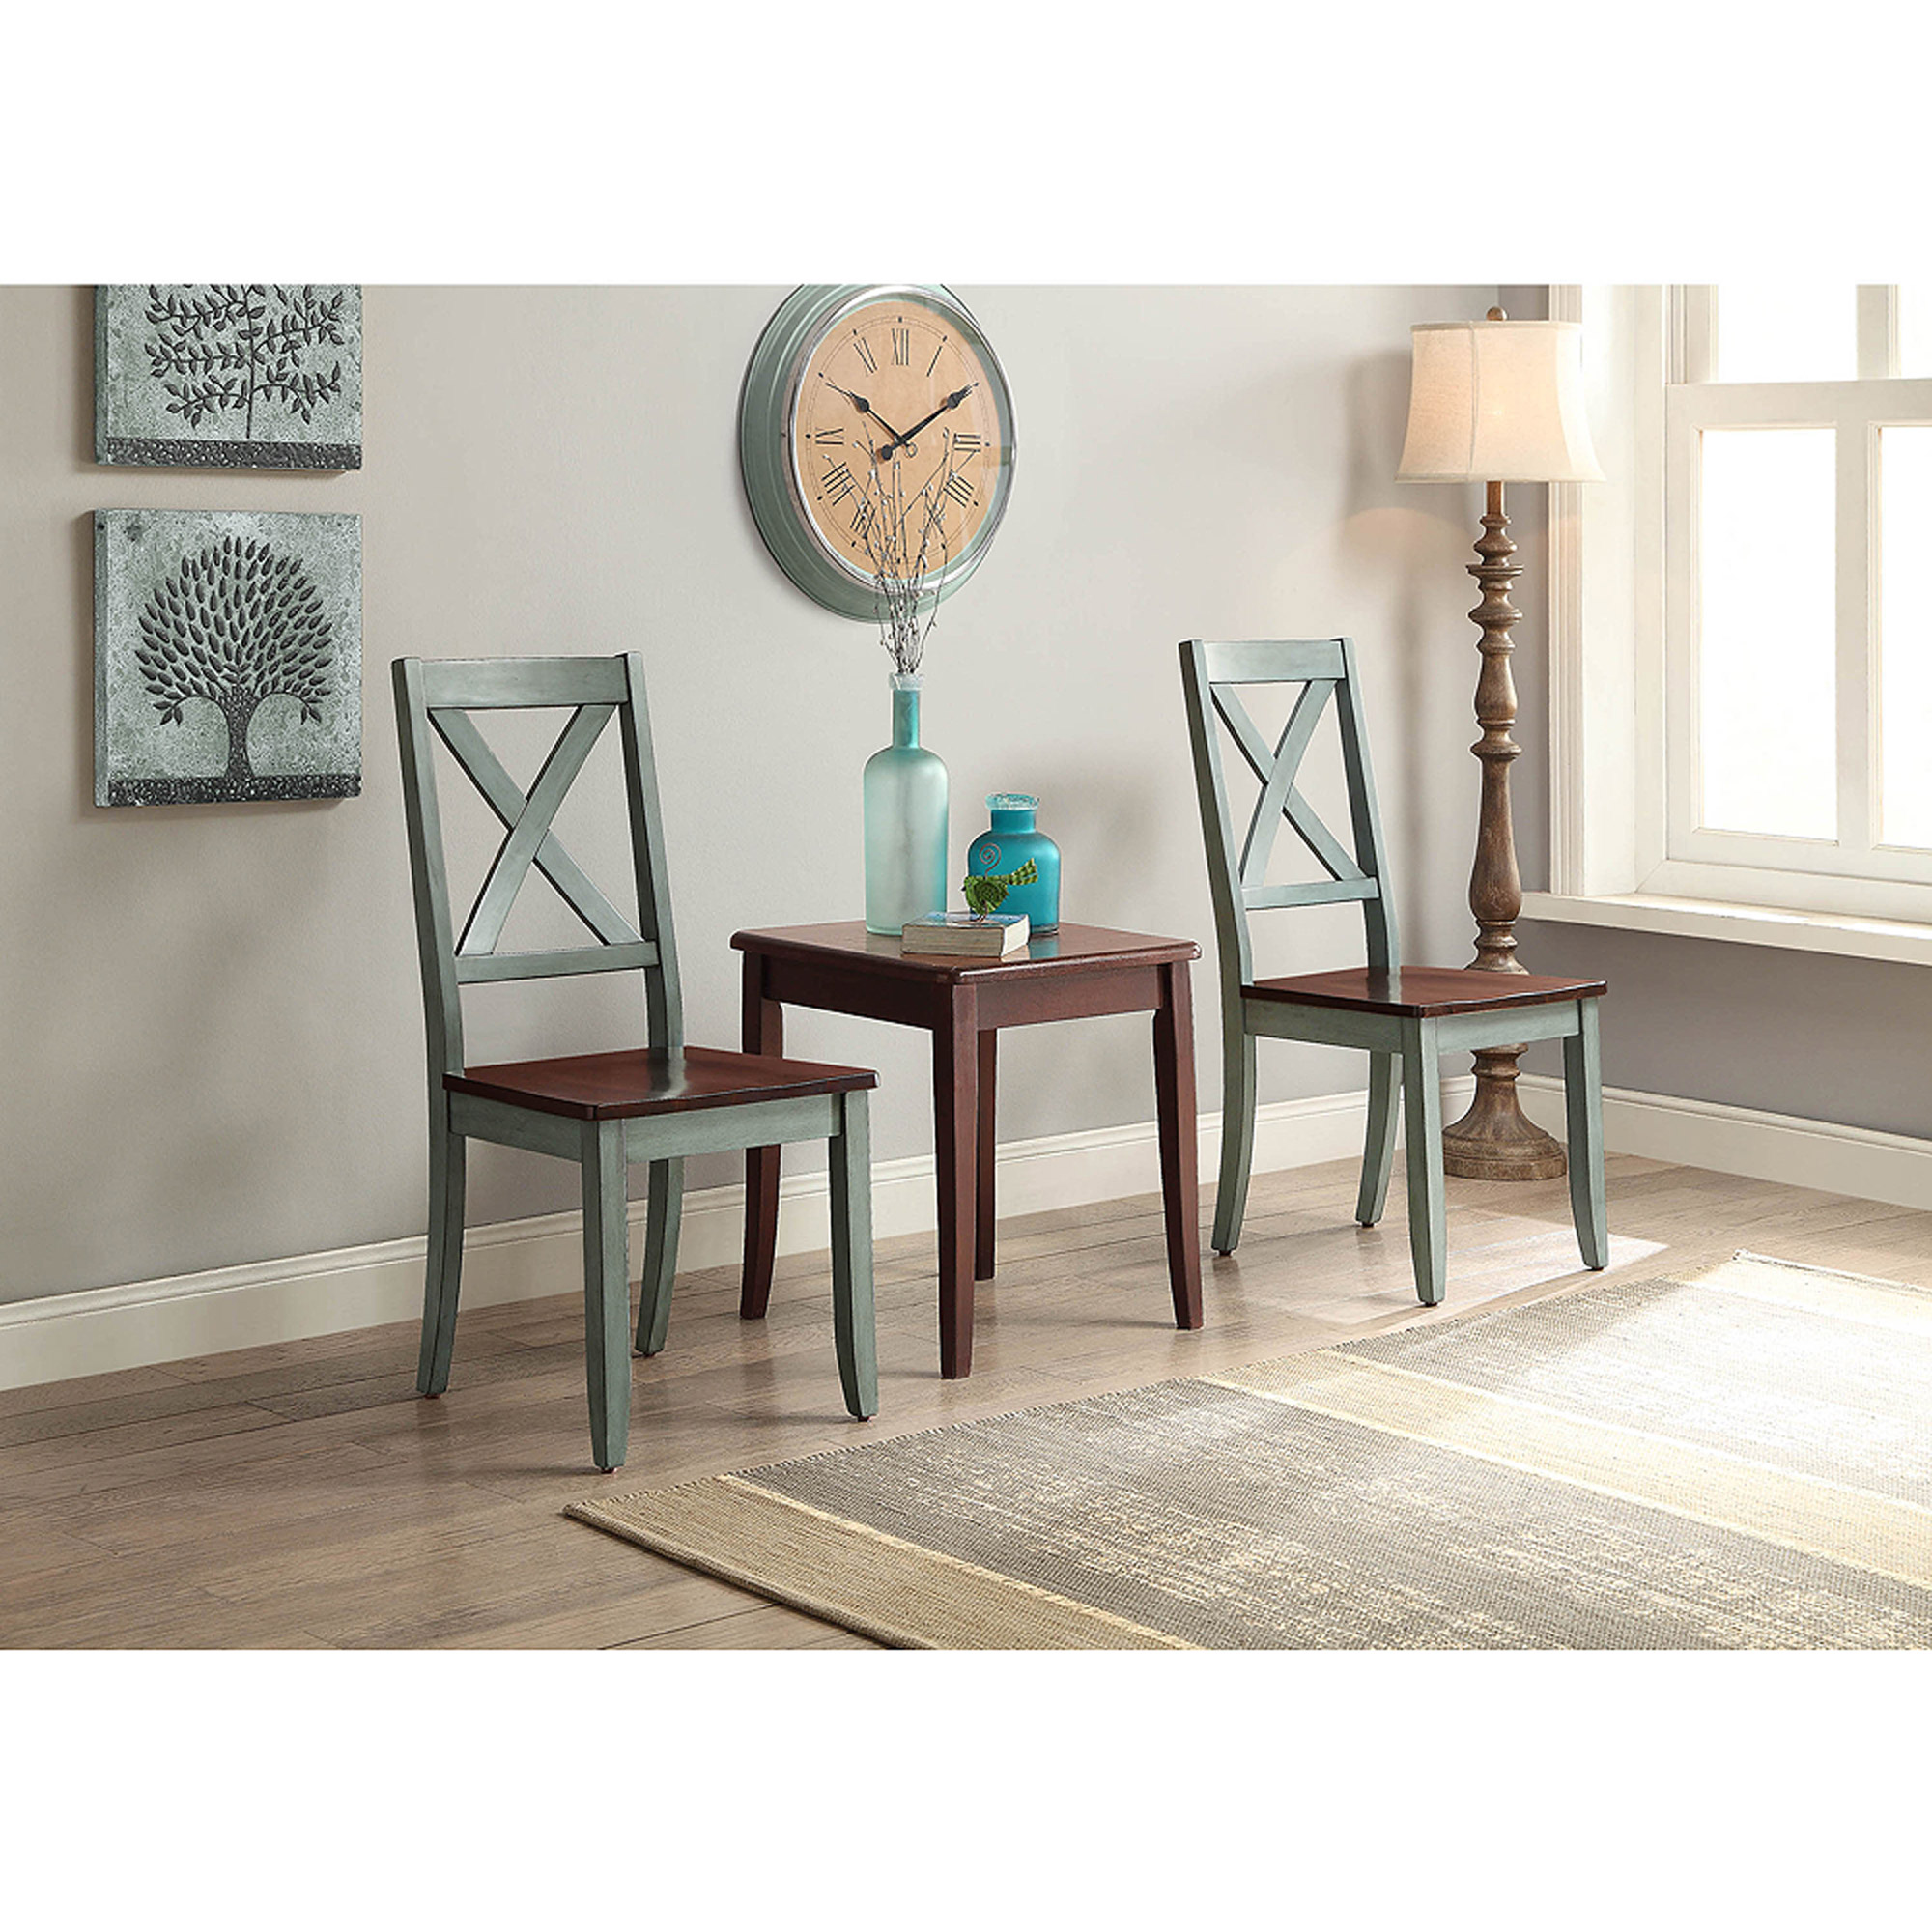 Better Homes And Gardens Maddox Crossing Dining Chair, Blue, Set Of 2    Walmart.com